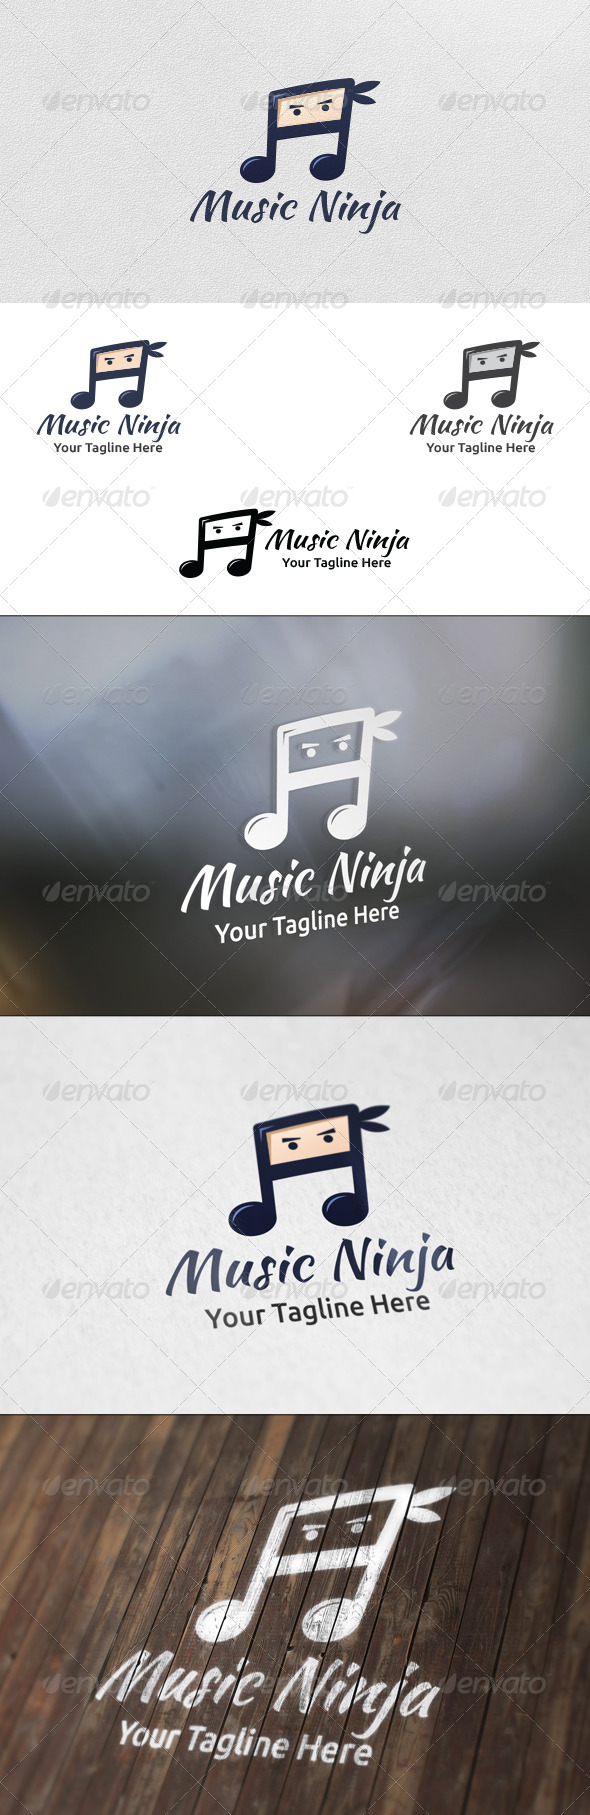 GraphicRiver Music Ninja Logo Template 5918371